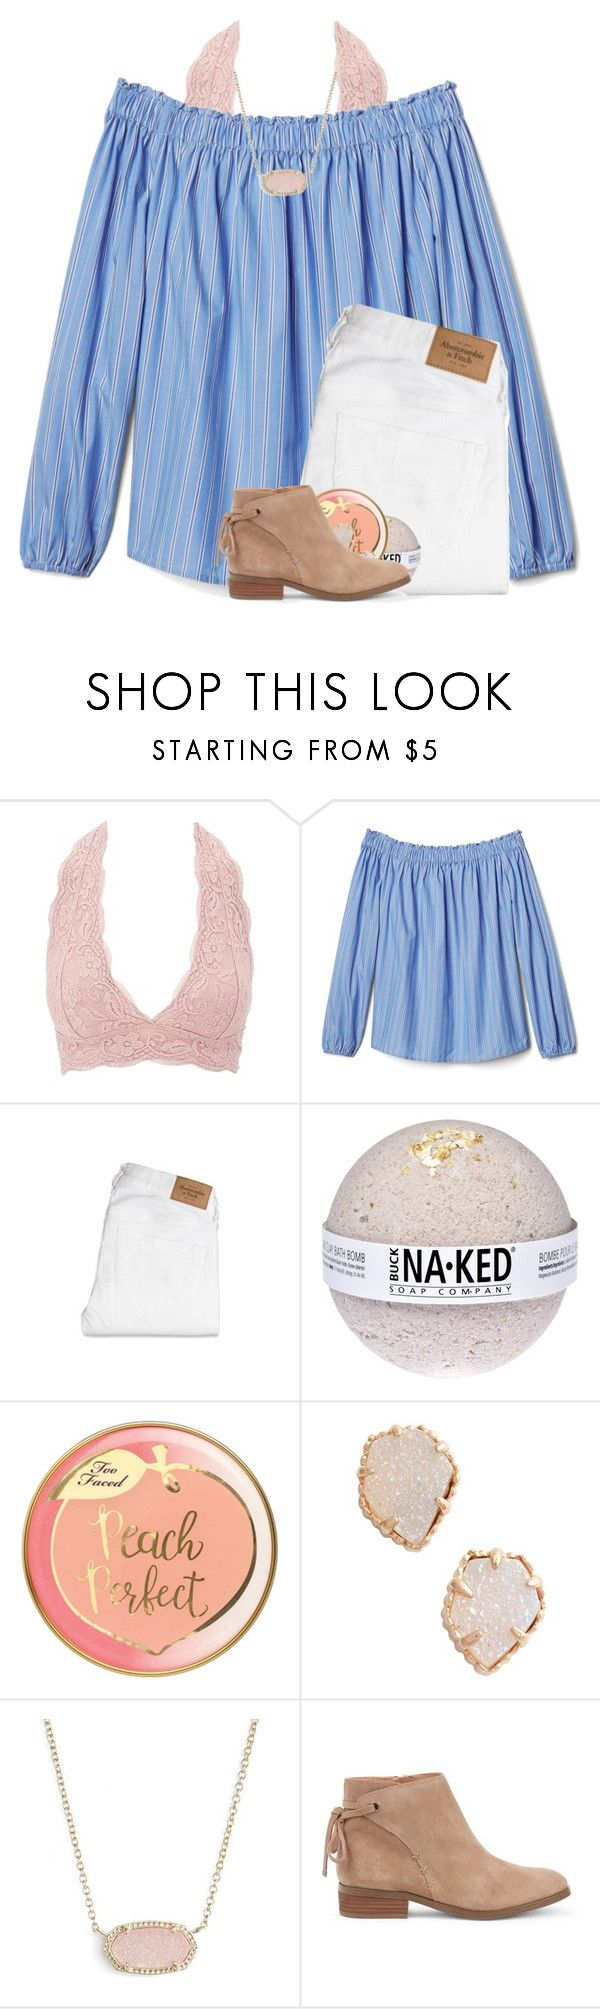 """day one: kendra scott"" by madelinelurene ❤ liked on Polyvore featuring Charlotte Russe, Abercrombie & Fitch, Kendra Scott, Sole Society and abs1000contest"